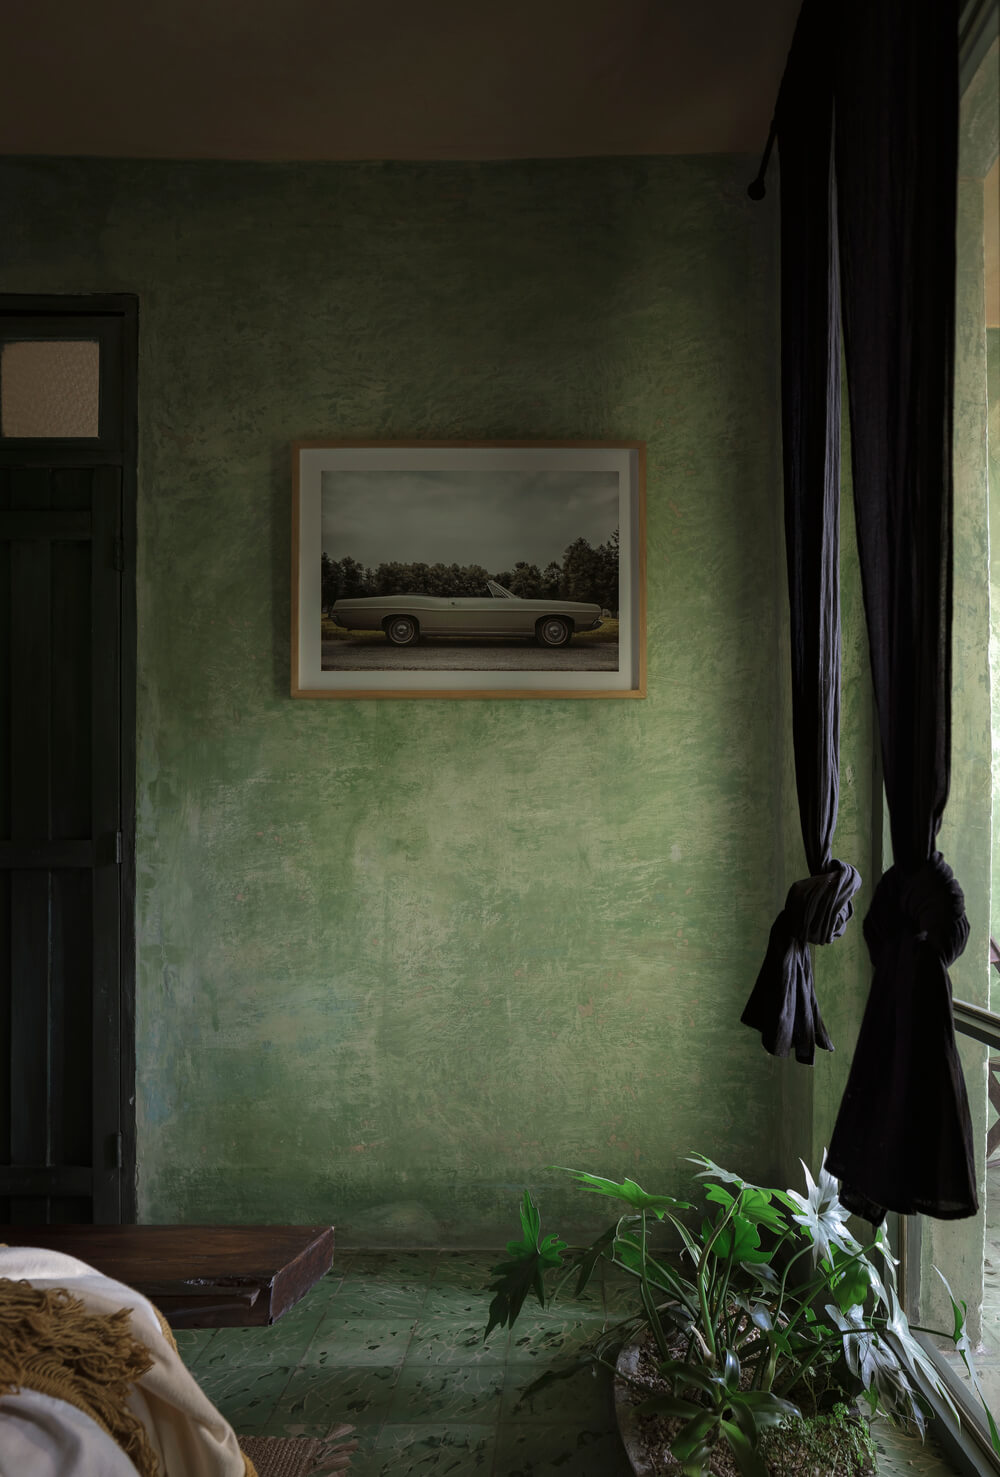 Across from the bed of the bedroom is a dark door with a wall-mounted artwork on the side by the window that has black curtains.